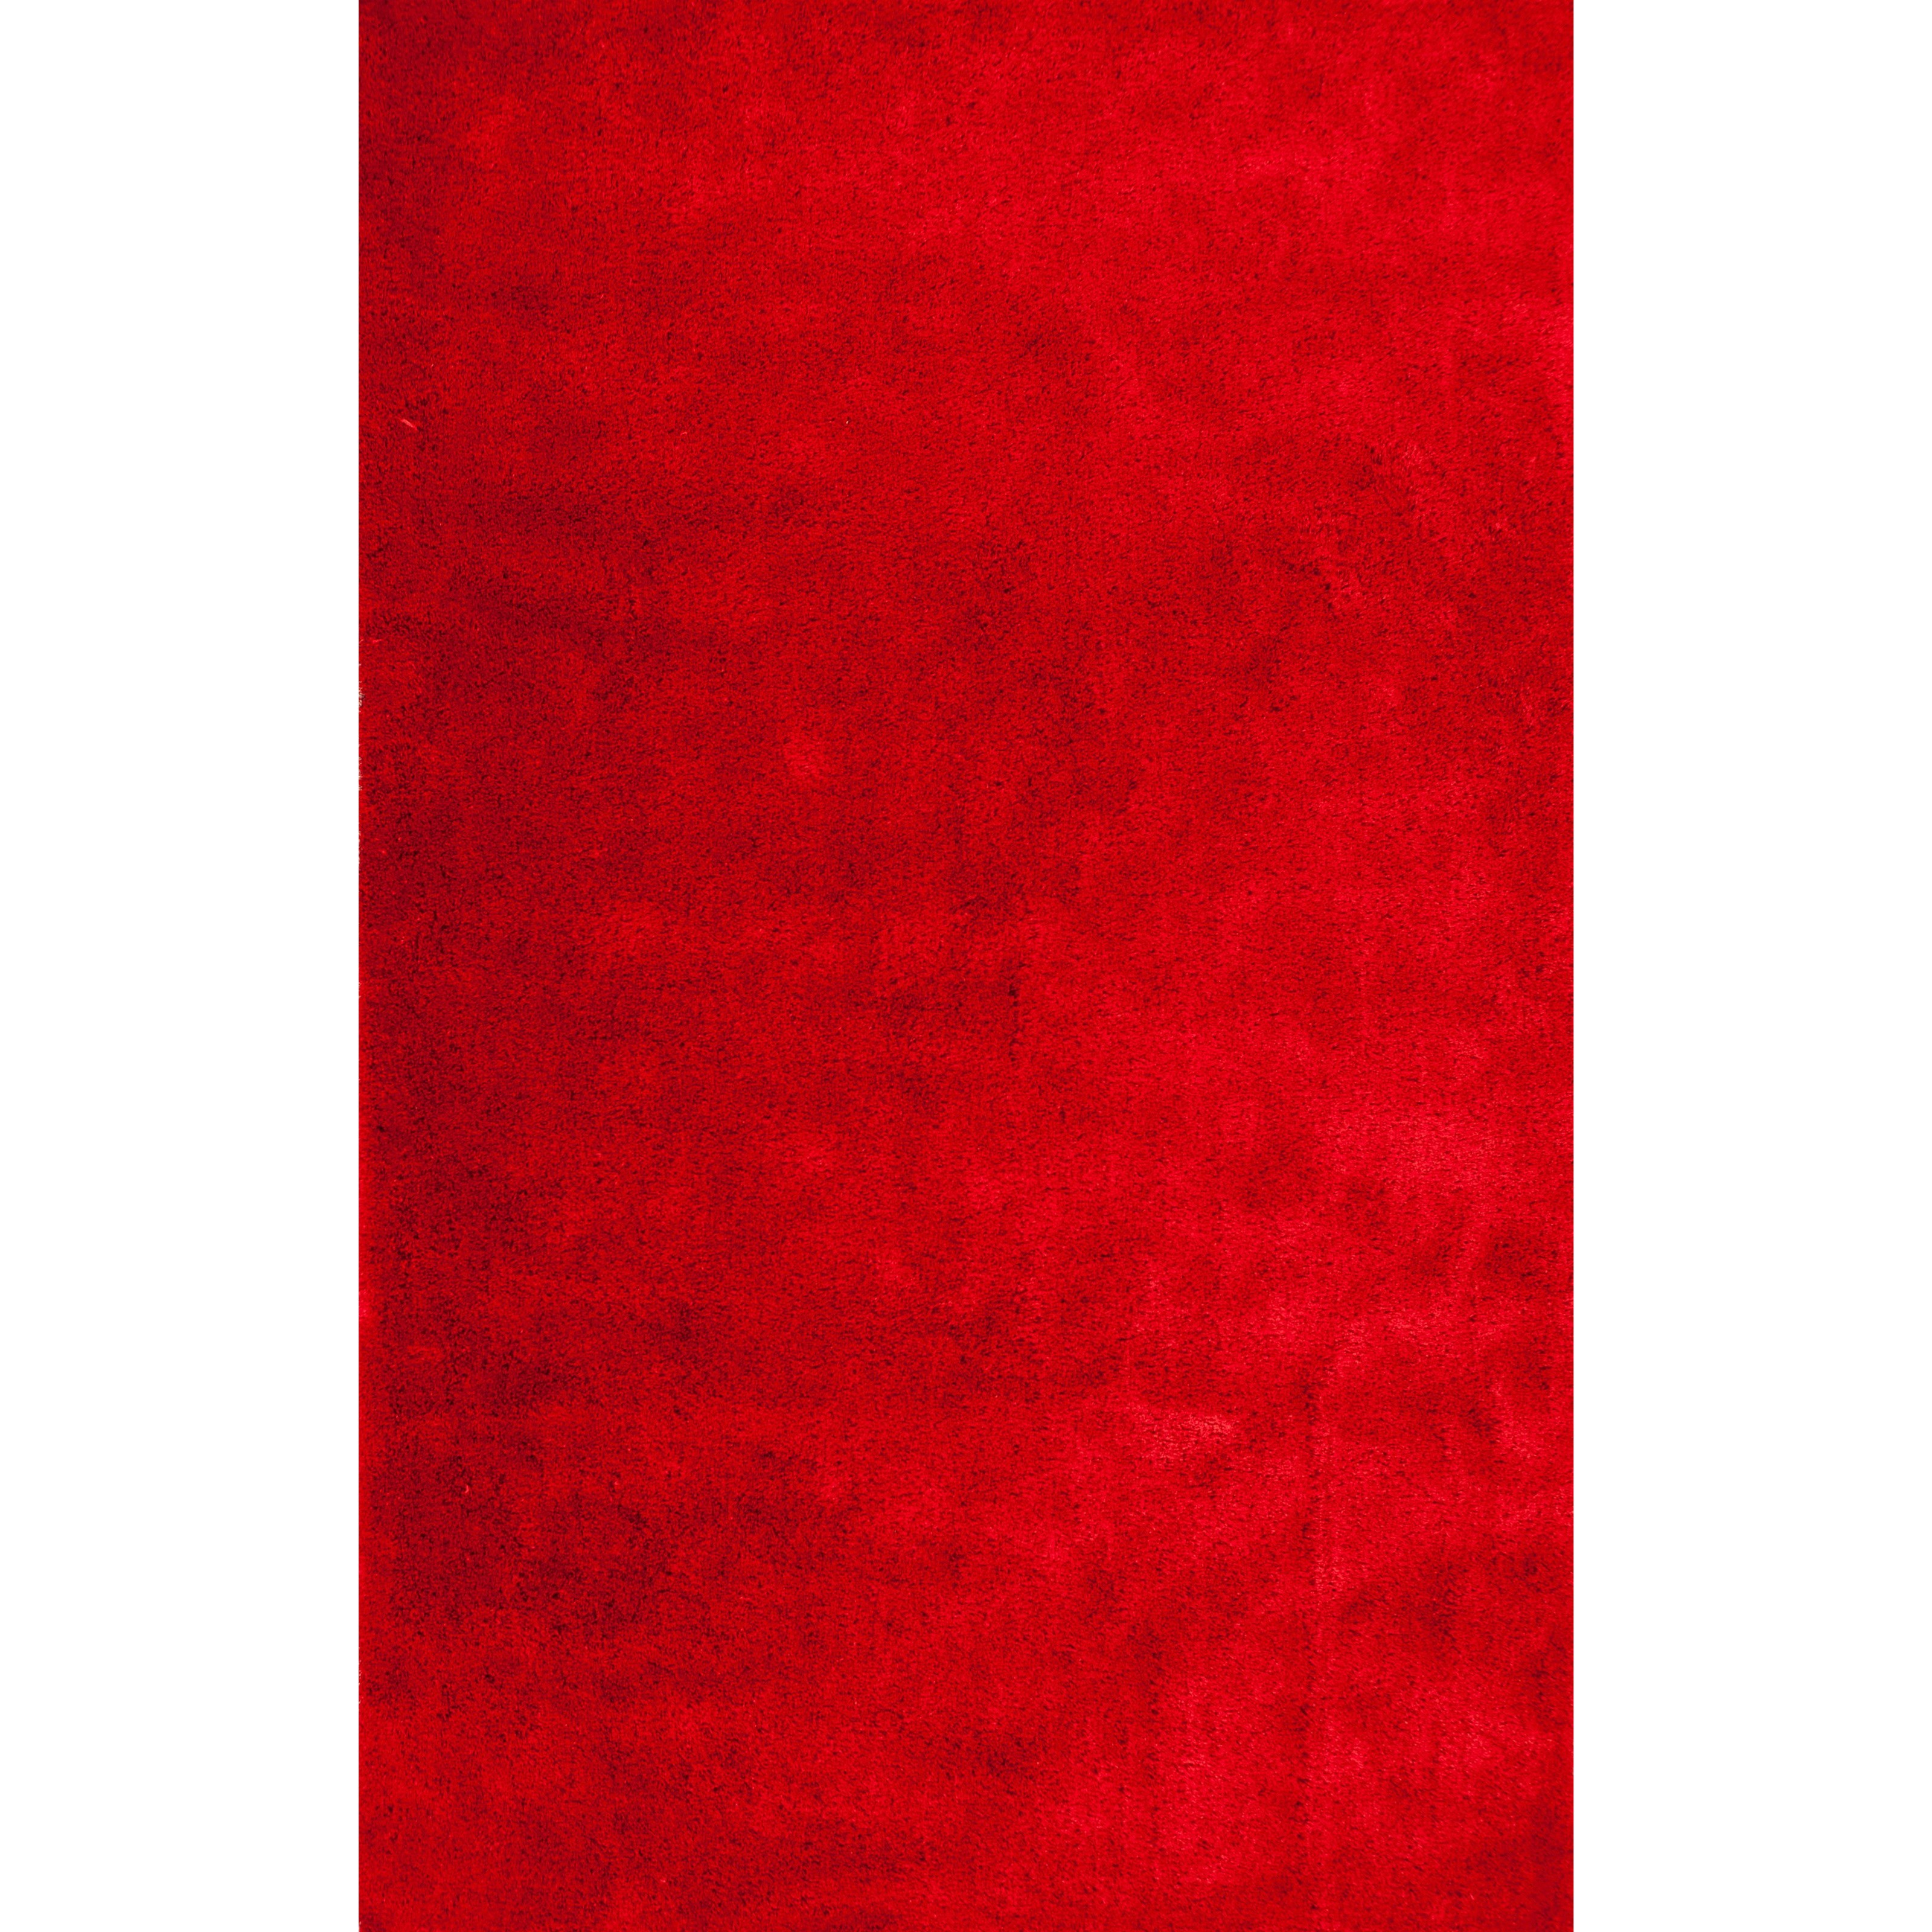 5' X 7' Tomato Red Area Rug